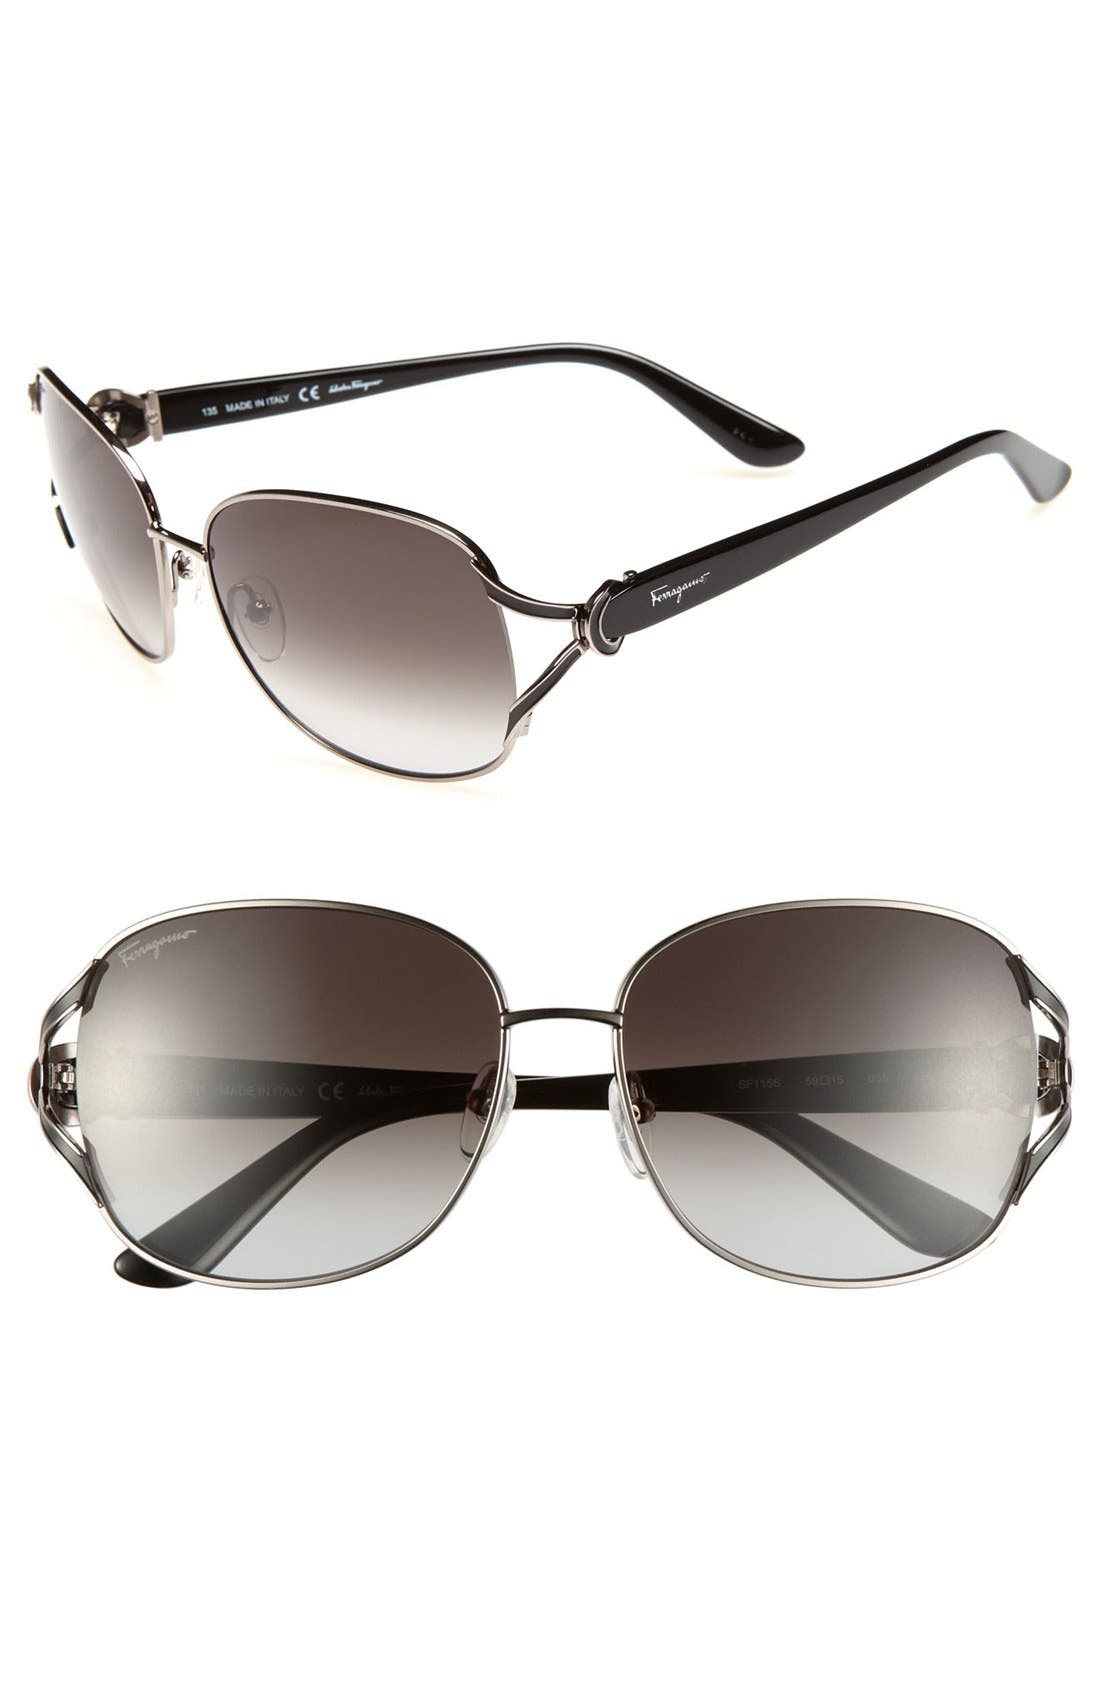 Alternate Image 1 Selected - Salvatore Ferragamo 59mm Metal Sunglasses